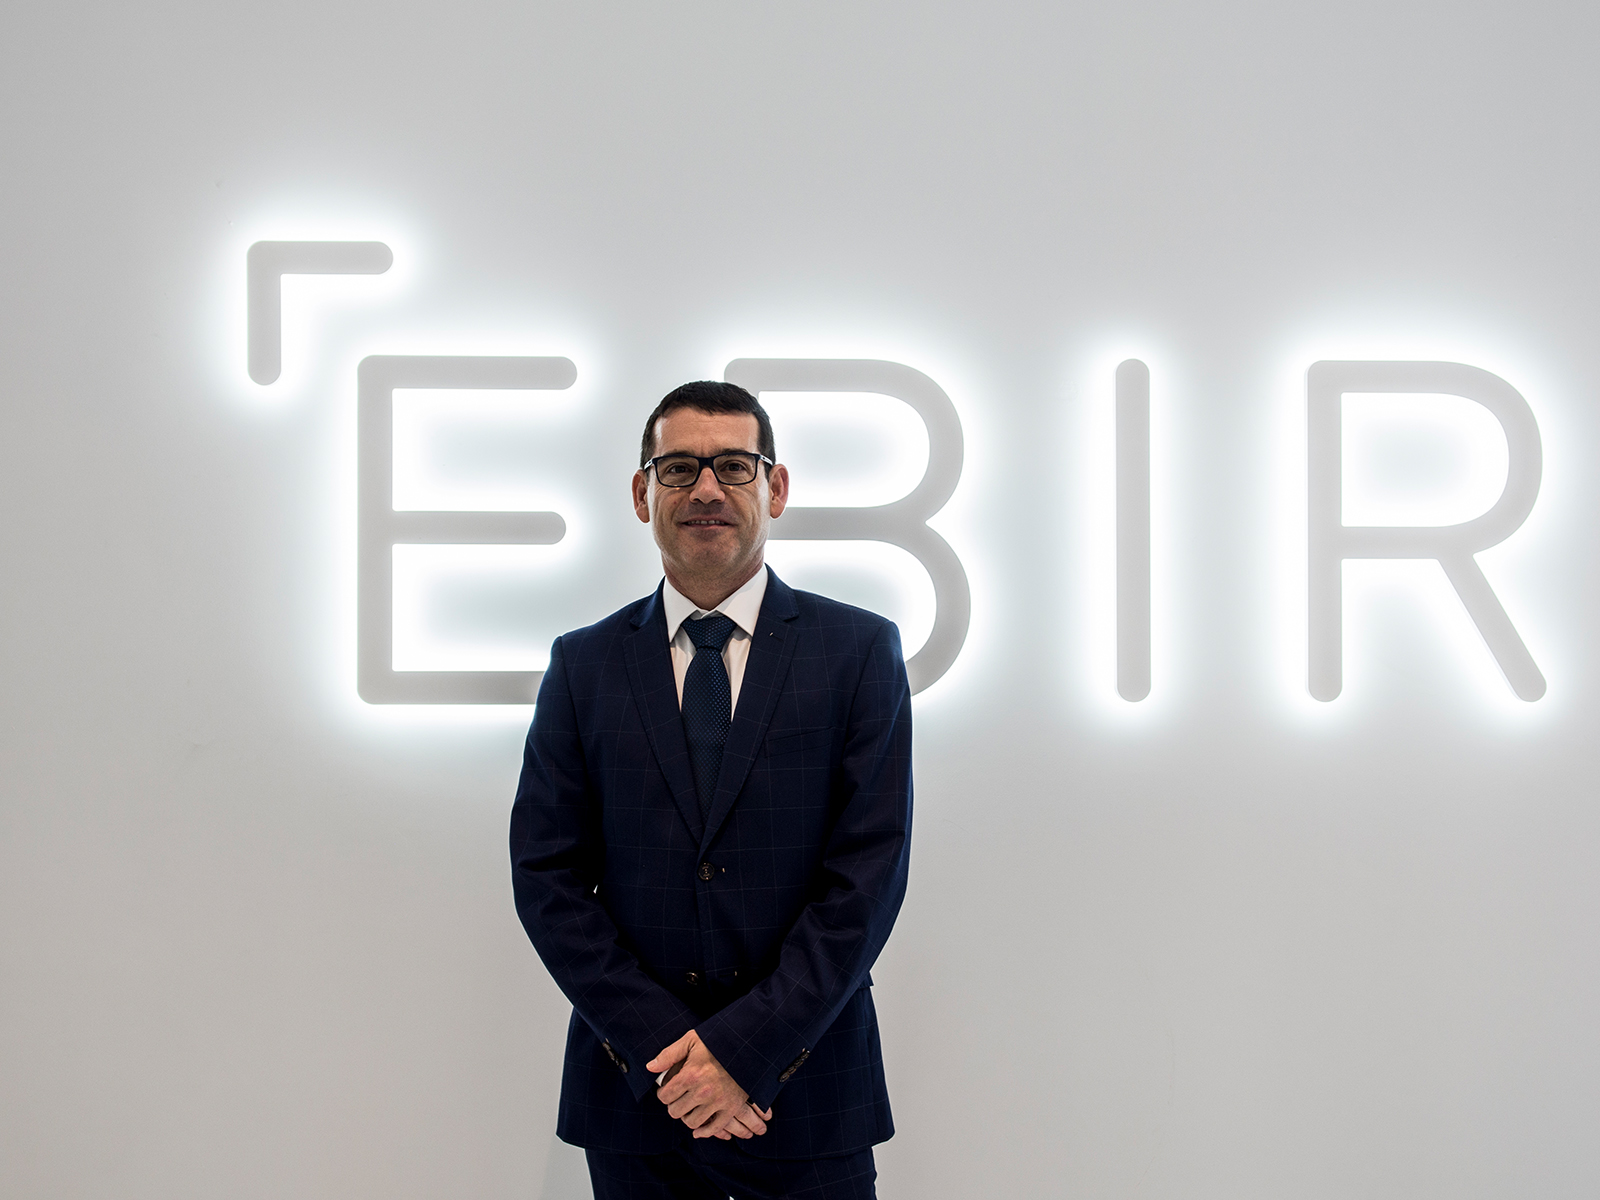 Juan José Ribé, General Manager of EBIR.